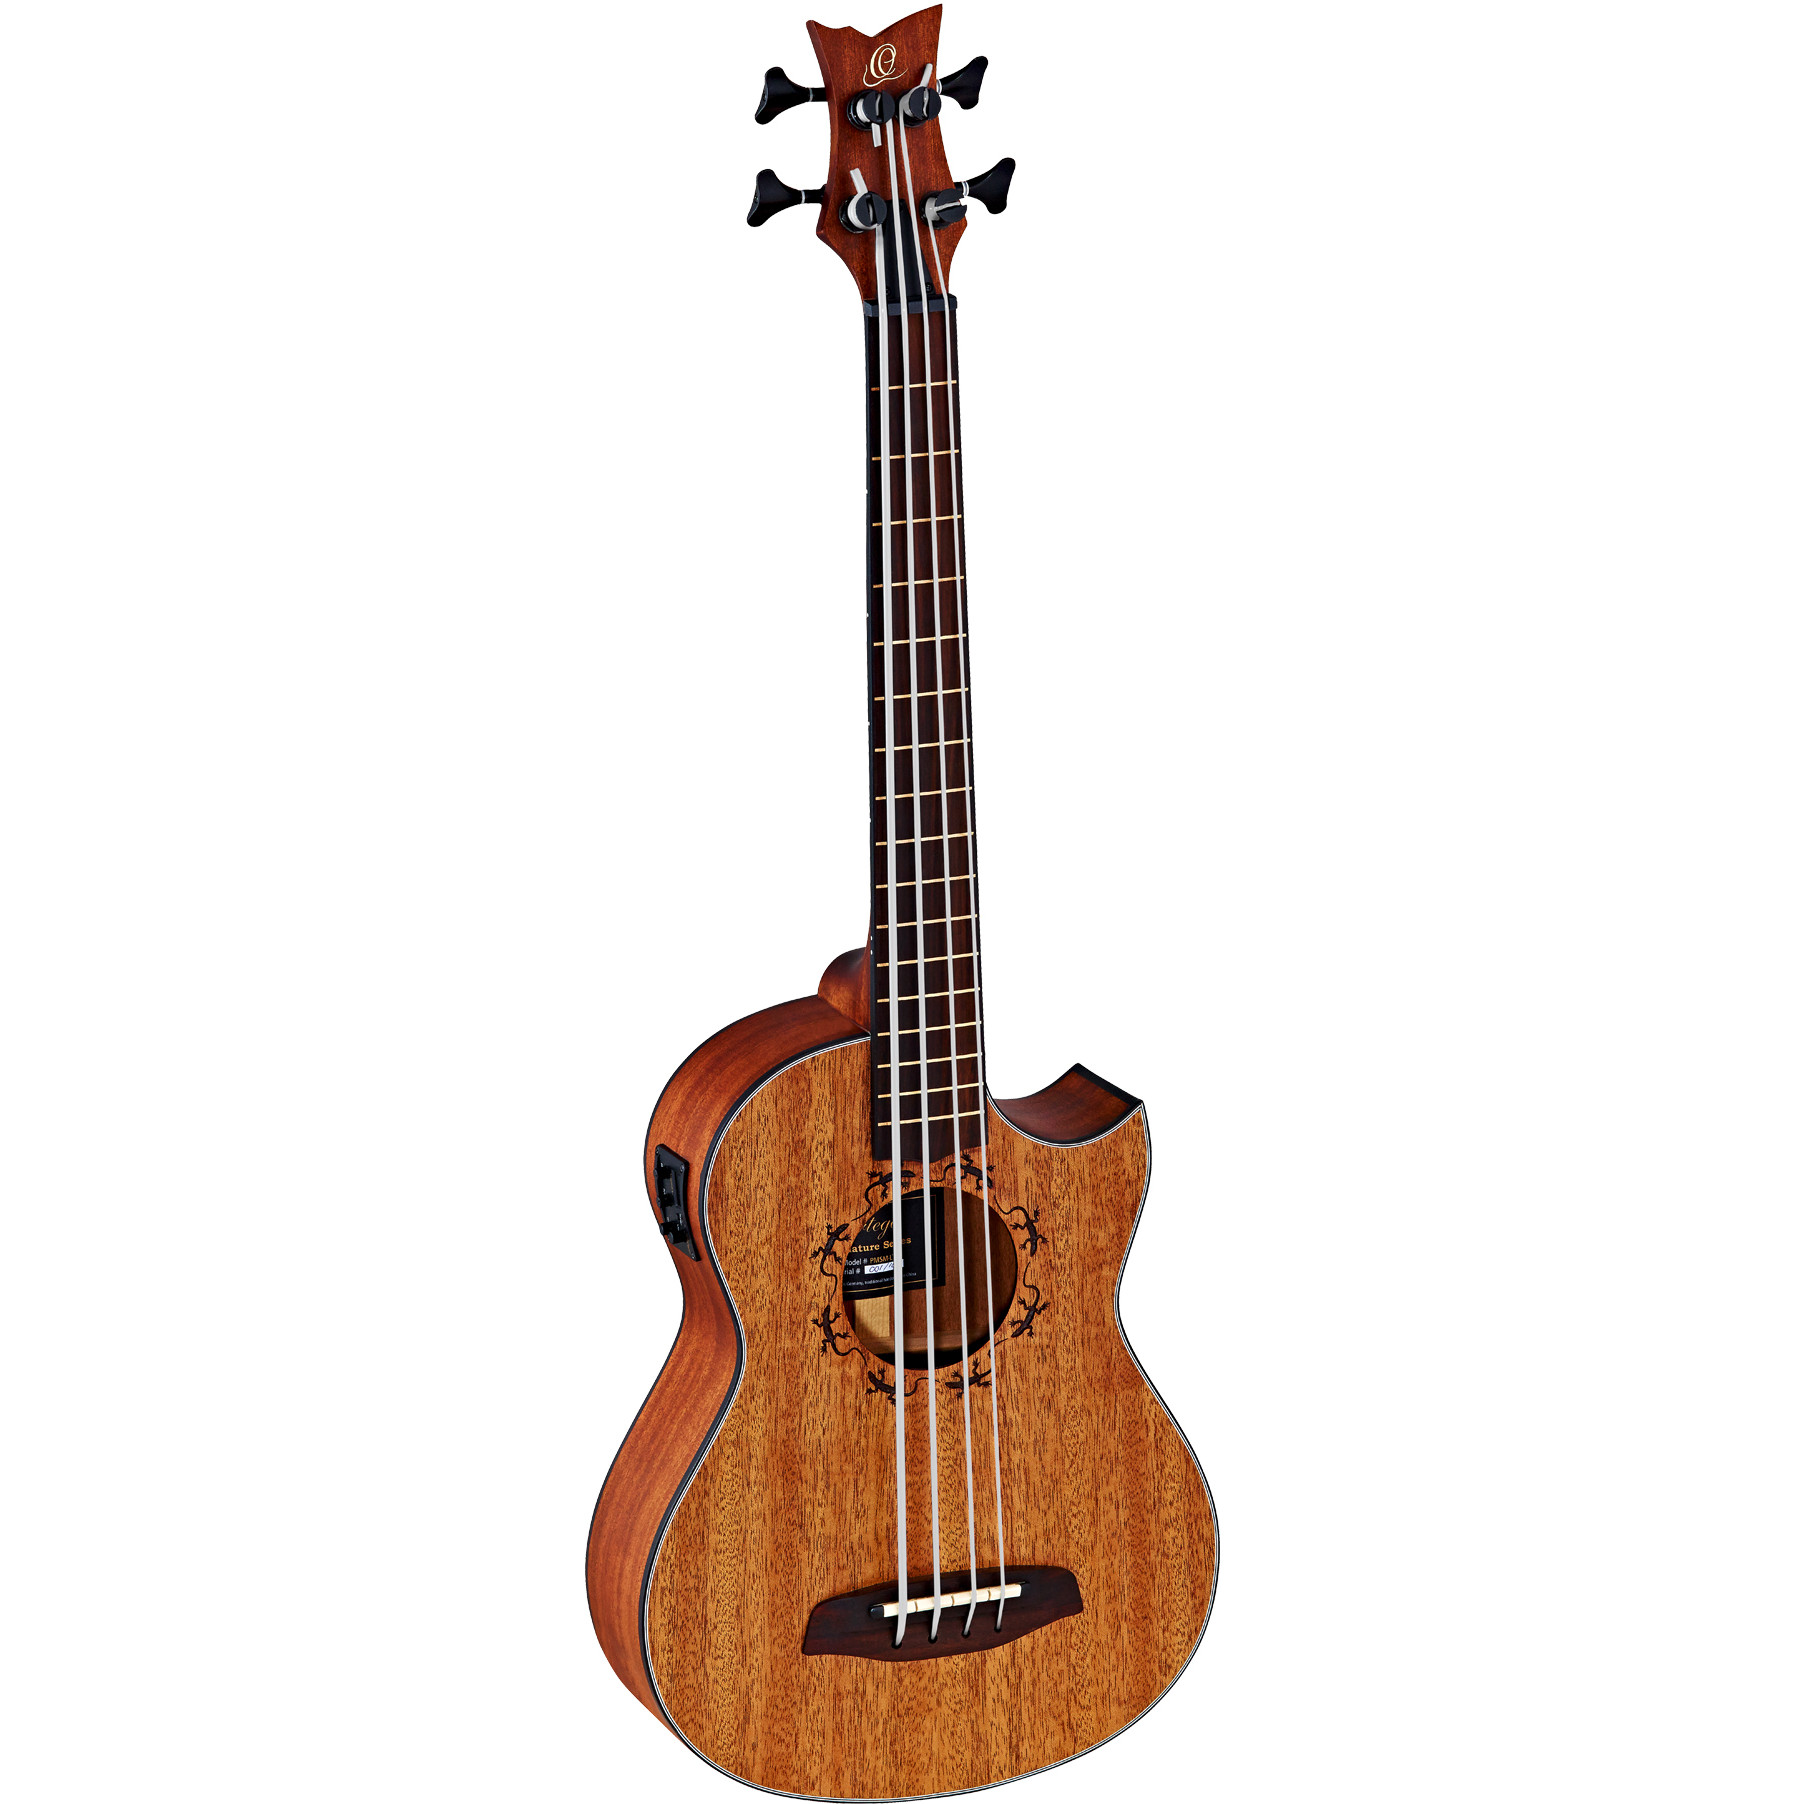 Ortega Lizard Series LIZZY PRO long scale bass ukulele with bag